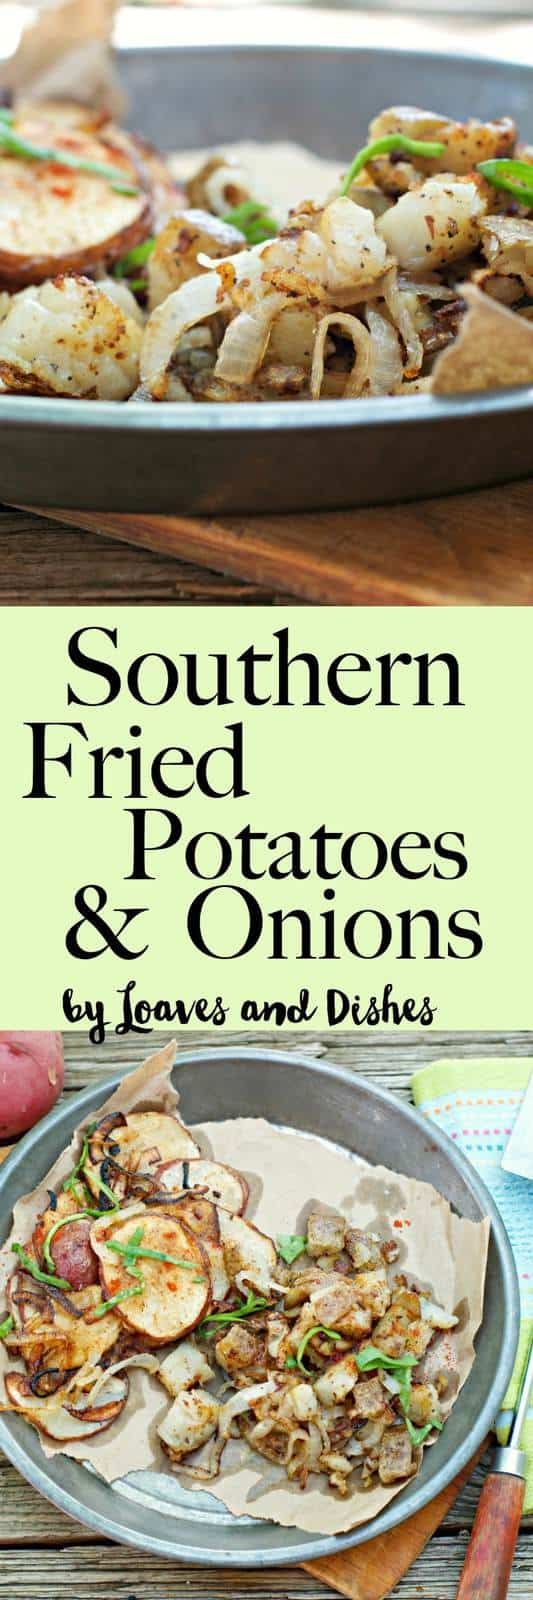 how to cook potatoes and onions